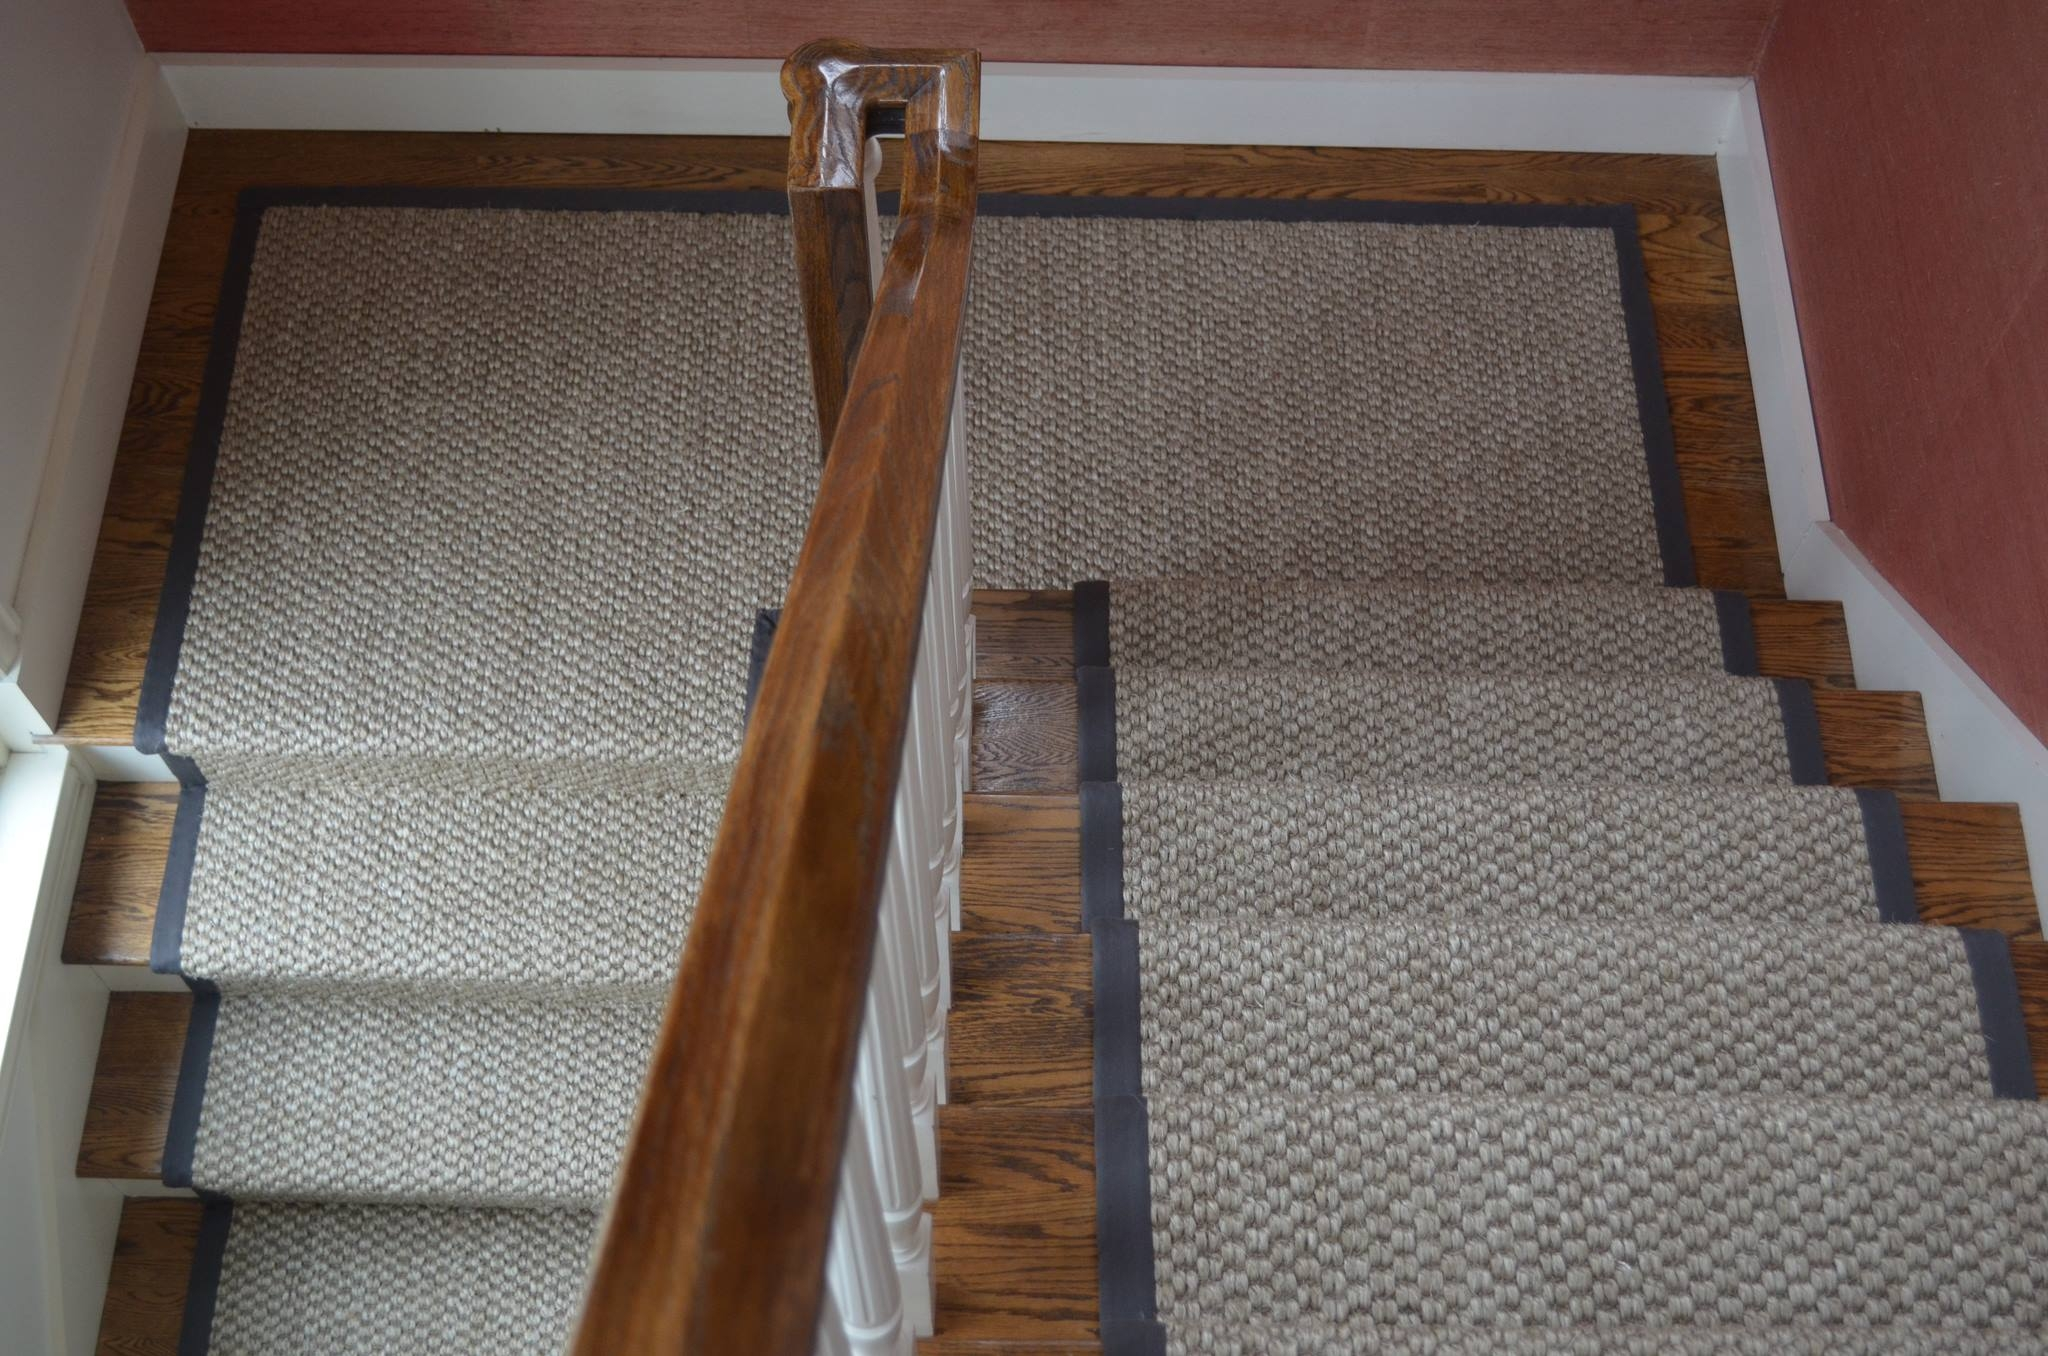 Compact Stair Tread Rugs Contemporary 30 Stair Tread Rugs Throughout Natural Stair Tread Rugs (Image 3 of 15)